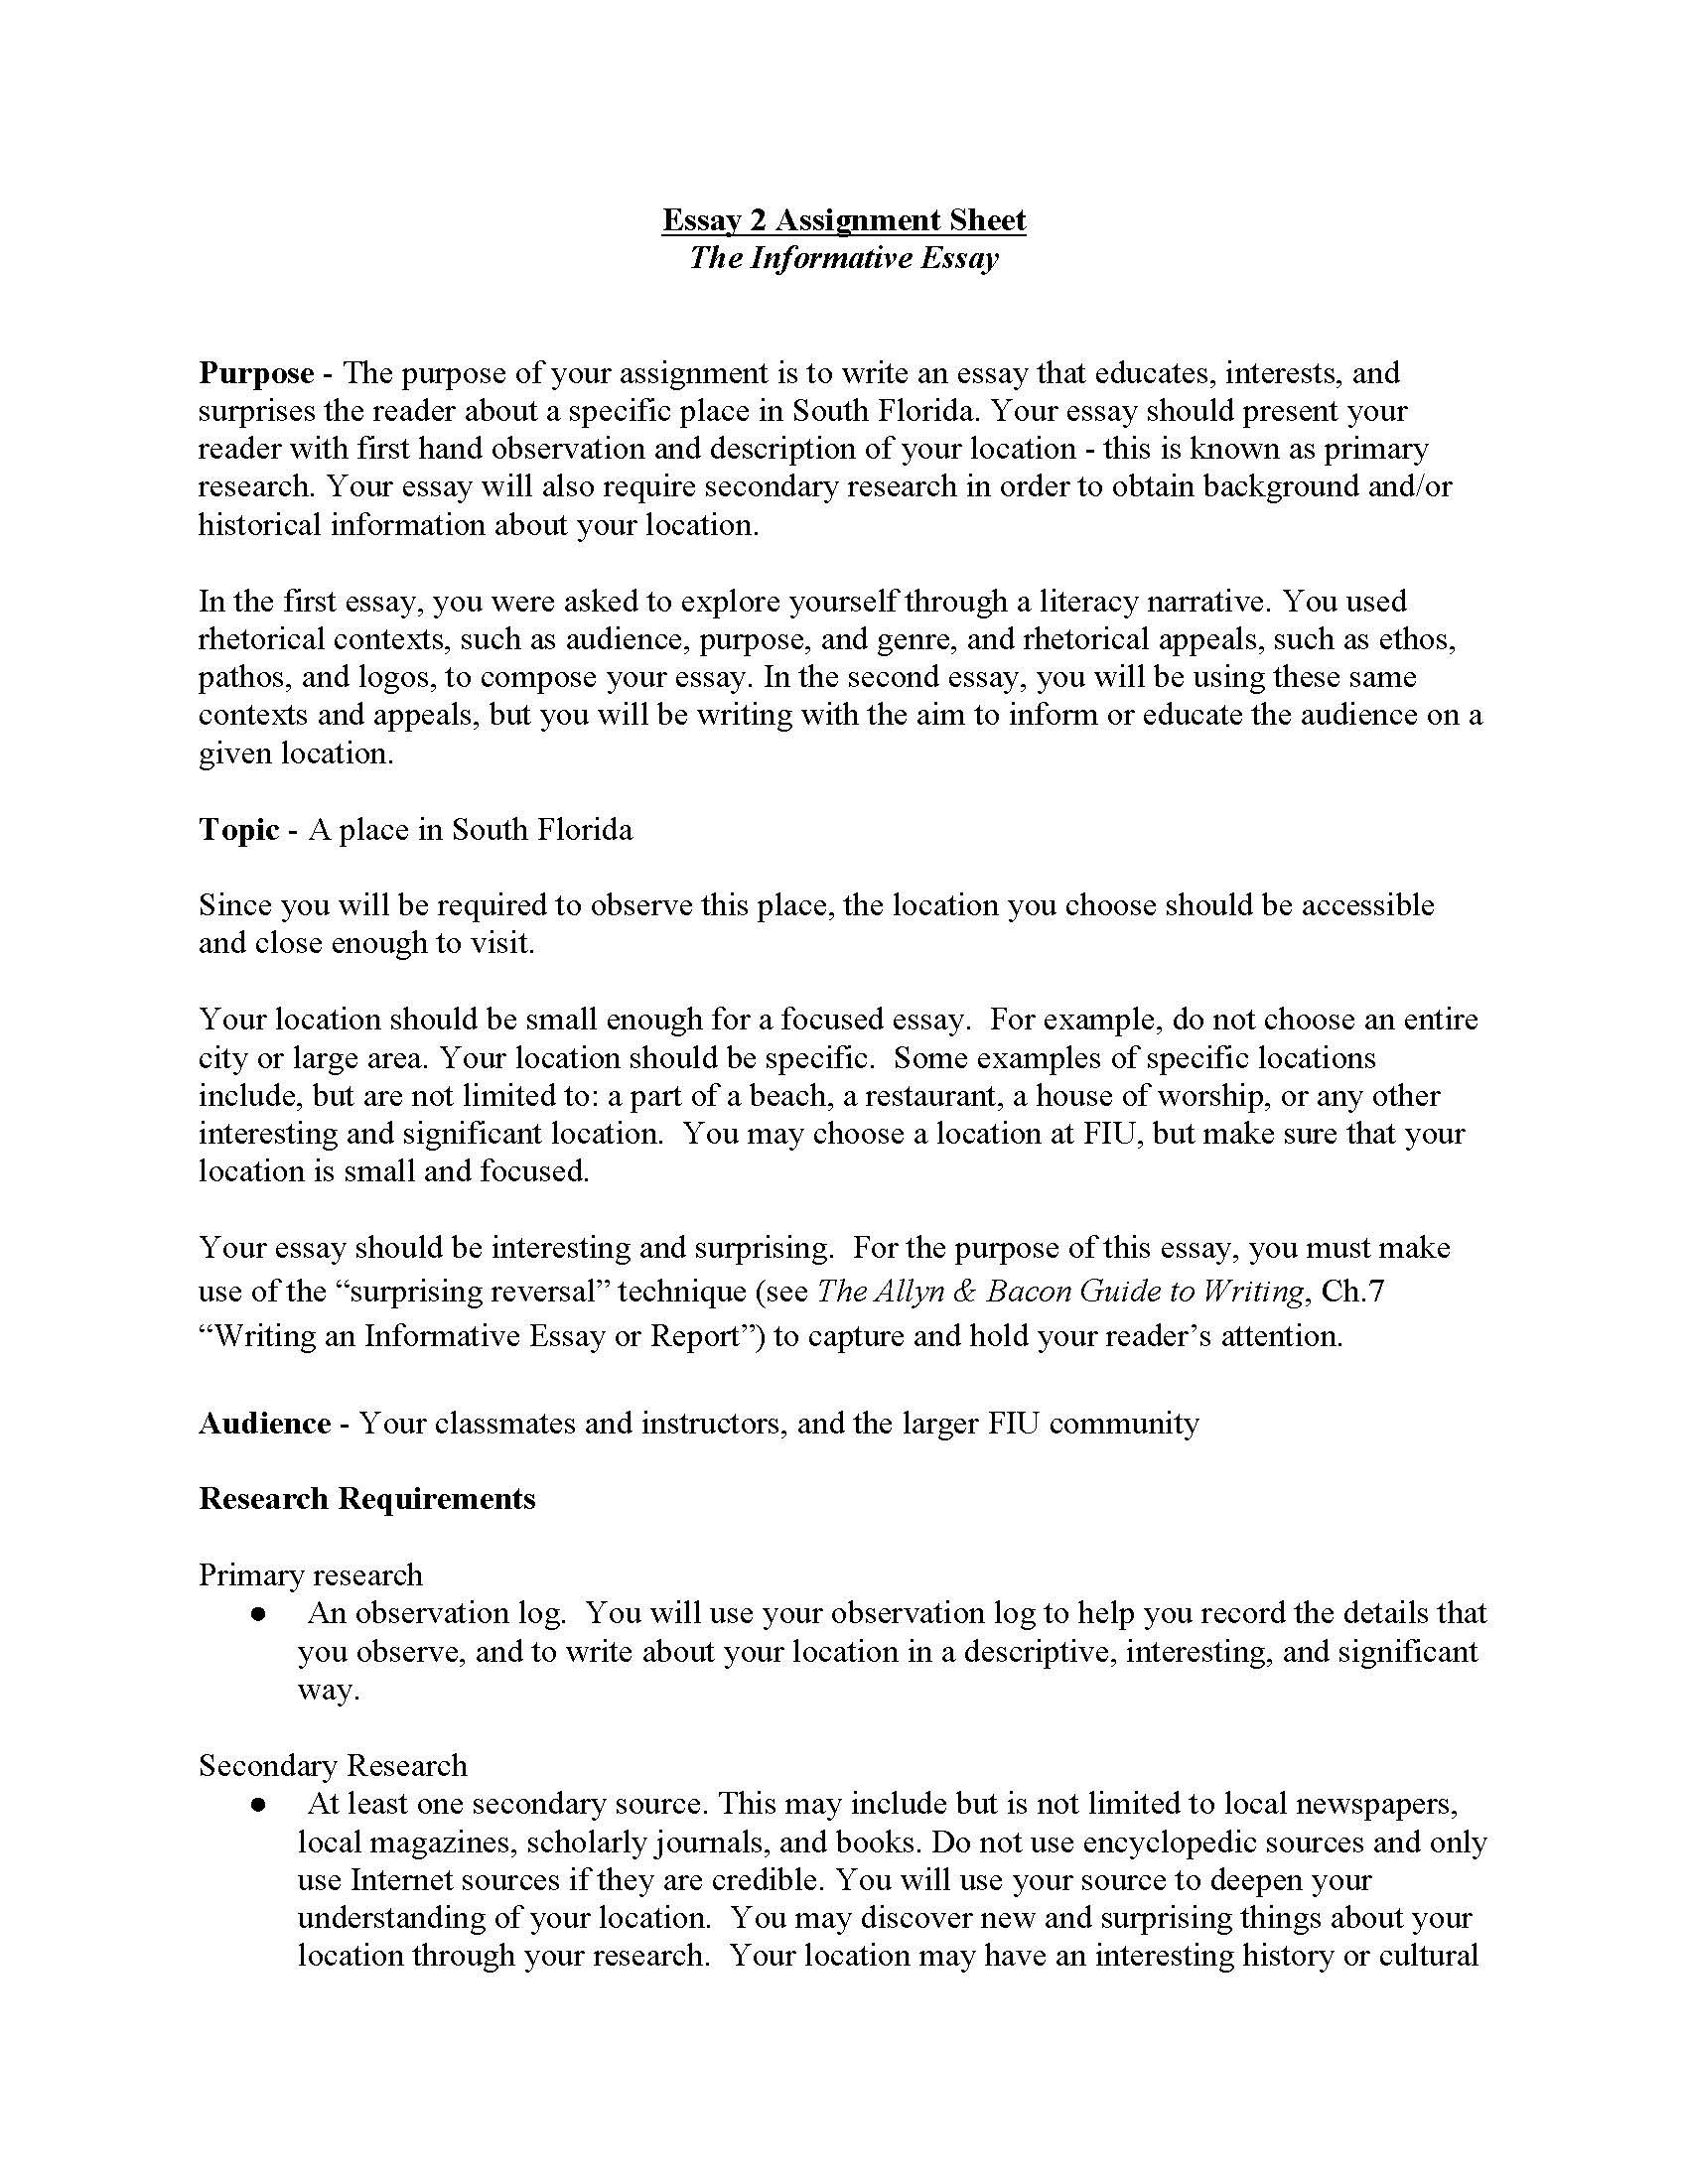 exemplification essay informative essay informative essay writing  informative essay informative essay writing help how to write help writing informative essay custom essay eupersuasive